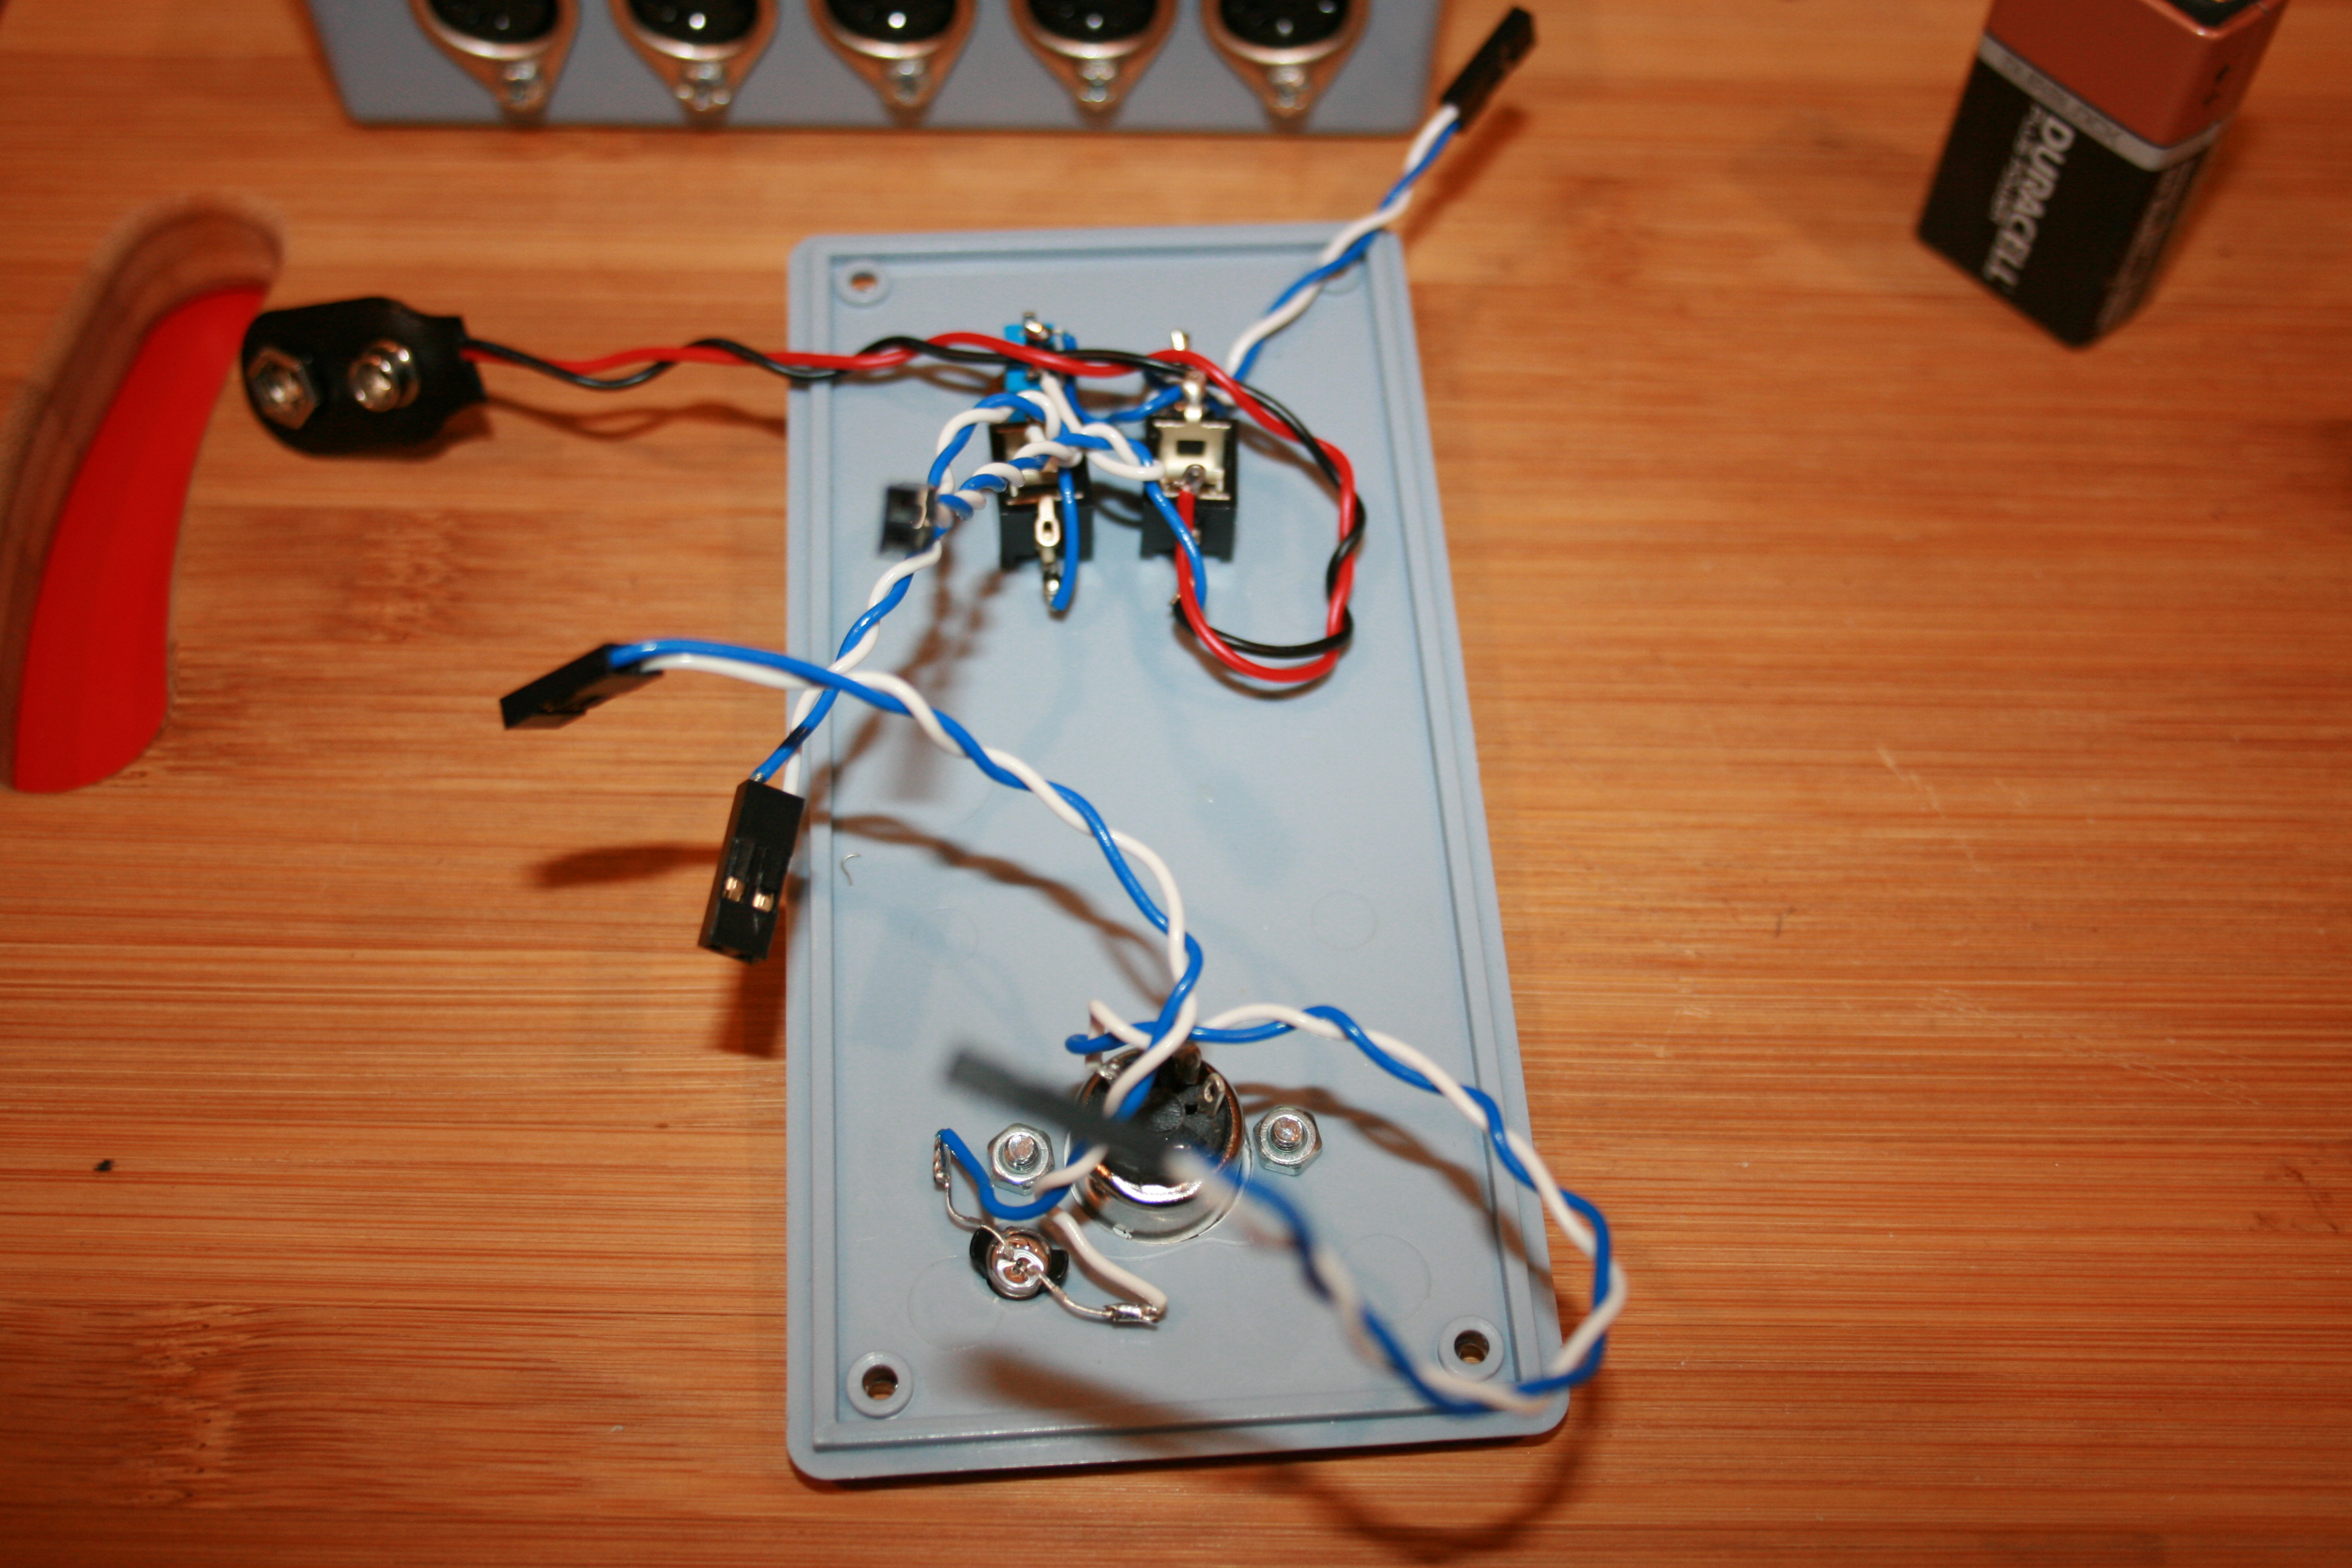 Diy Midi Thru Box Morocco Dave Can You Gave Me A Websites Or Links That Thousands Of Schematics Diagram Electronics Once Was Done I Could Put The Remaining Components In Place On Panel And Do Last Bits Soldering